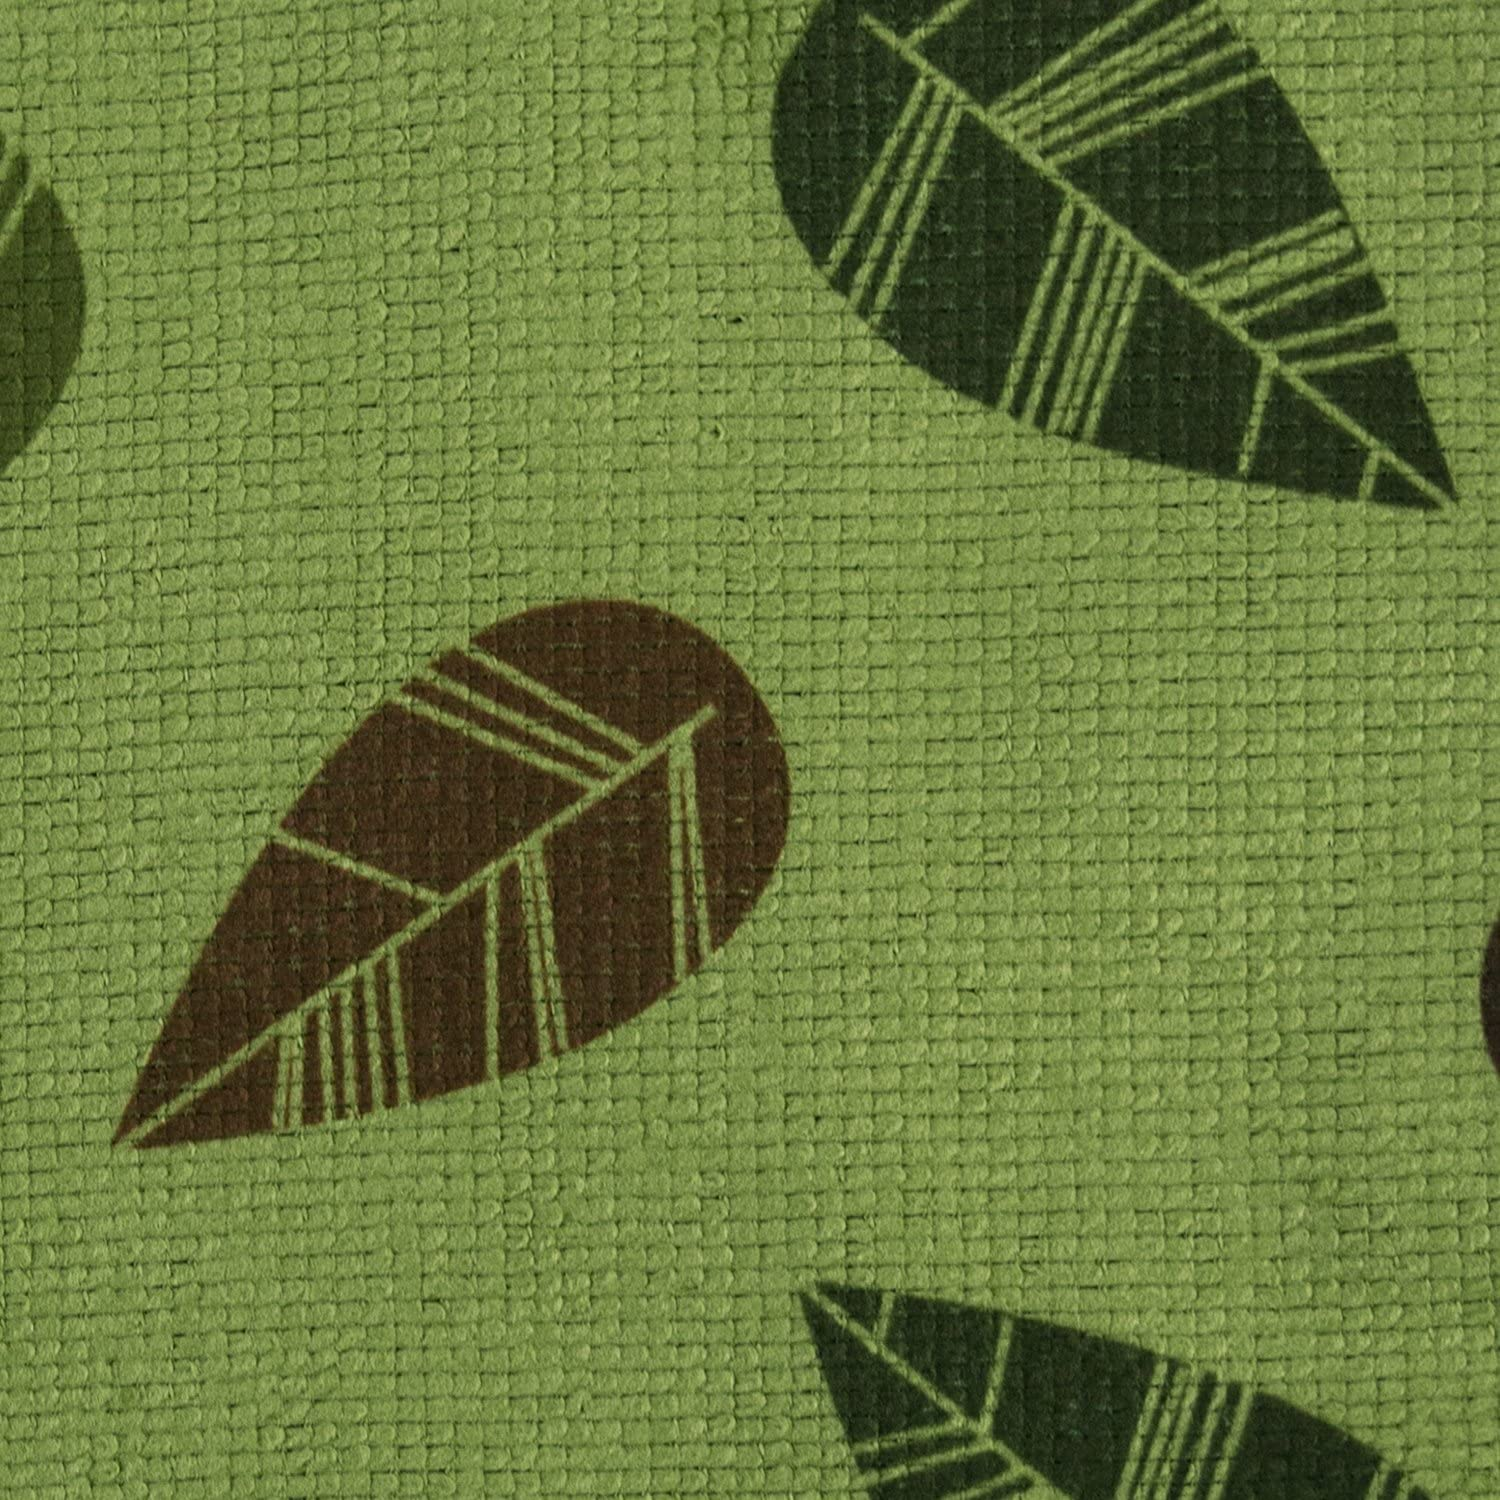 Car Dishes 12 x 12 Set of 4 Green Leaves Drying Rags Dusting DII Microfiber Cleaning Towels Perfect for Kitchens